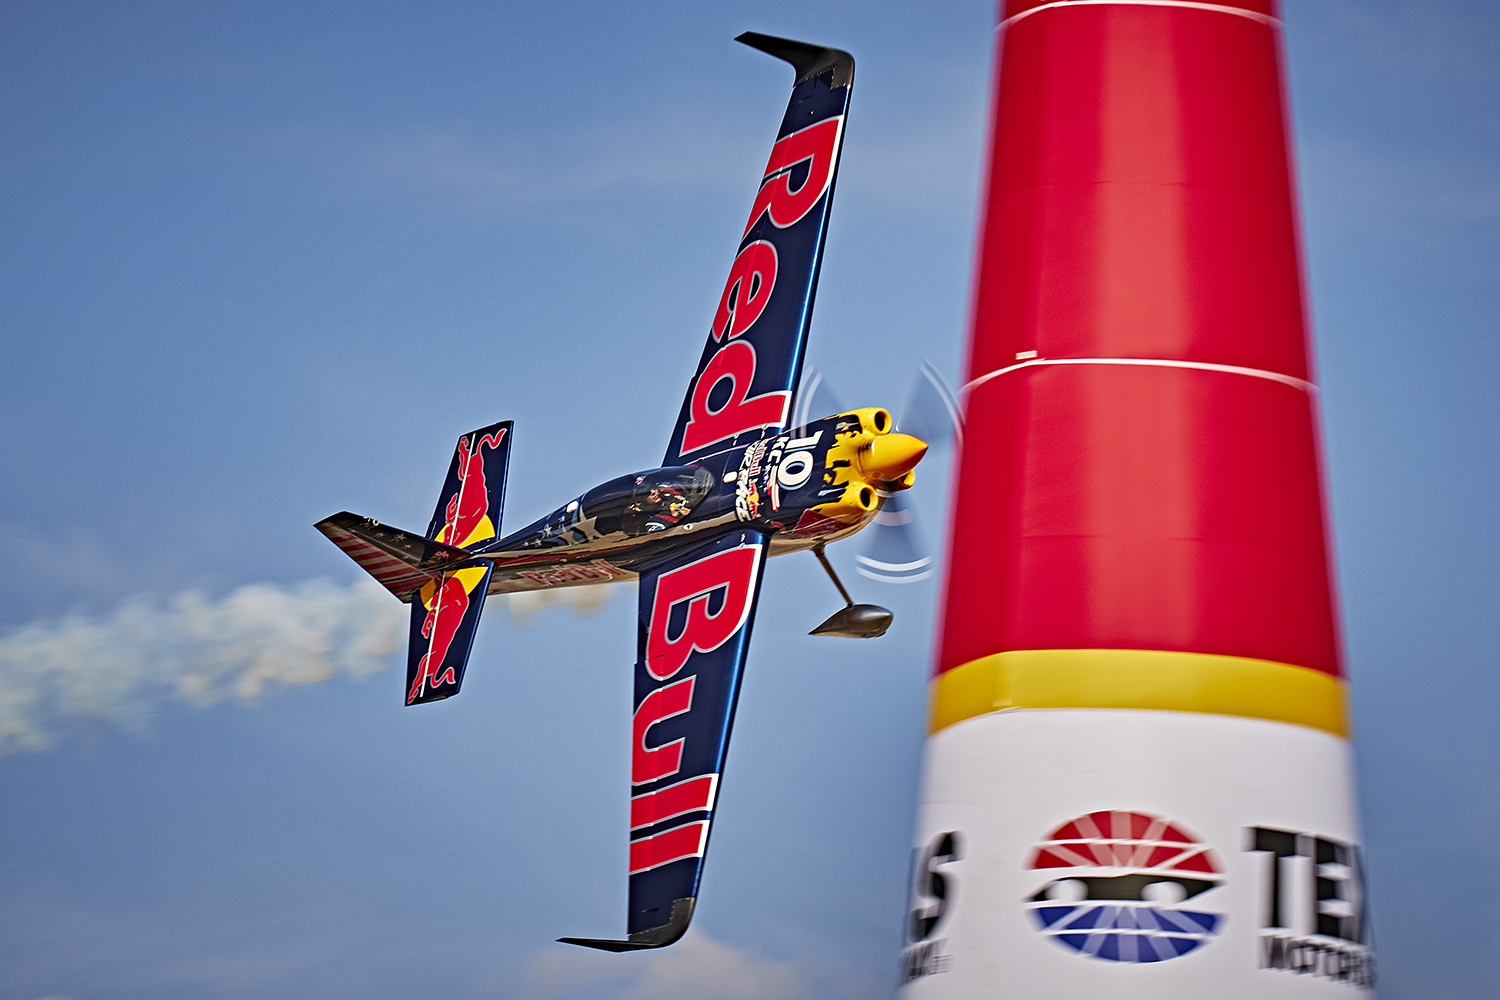 Kirby Chambliss of the United States performs during the training of the seventh stage of the Red Bull Air Race World Championship at the Texas Motor Speedway in Fort Worth, Texas, United States on September 25, 2015. Andreas Langreiter Red Bull Content Pool P-20150926-00065 Usage for editorial use only Please go to www.redbullcontentpool.com for further information.